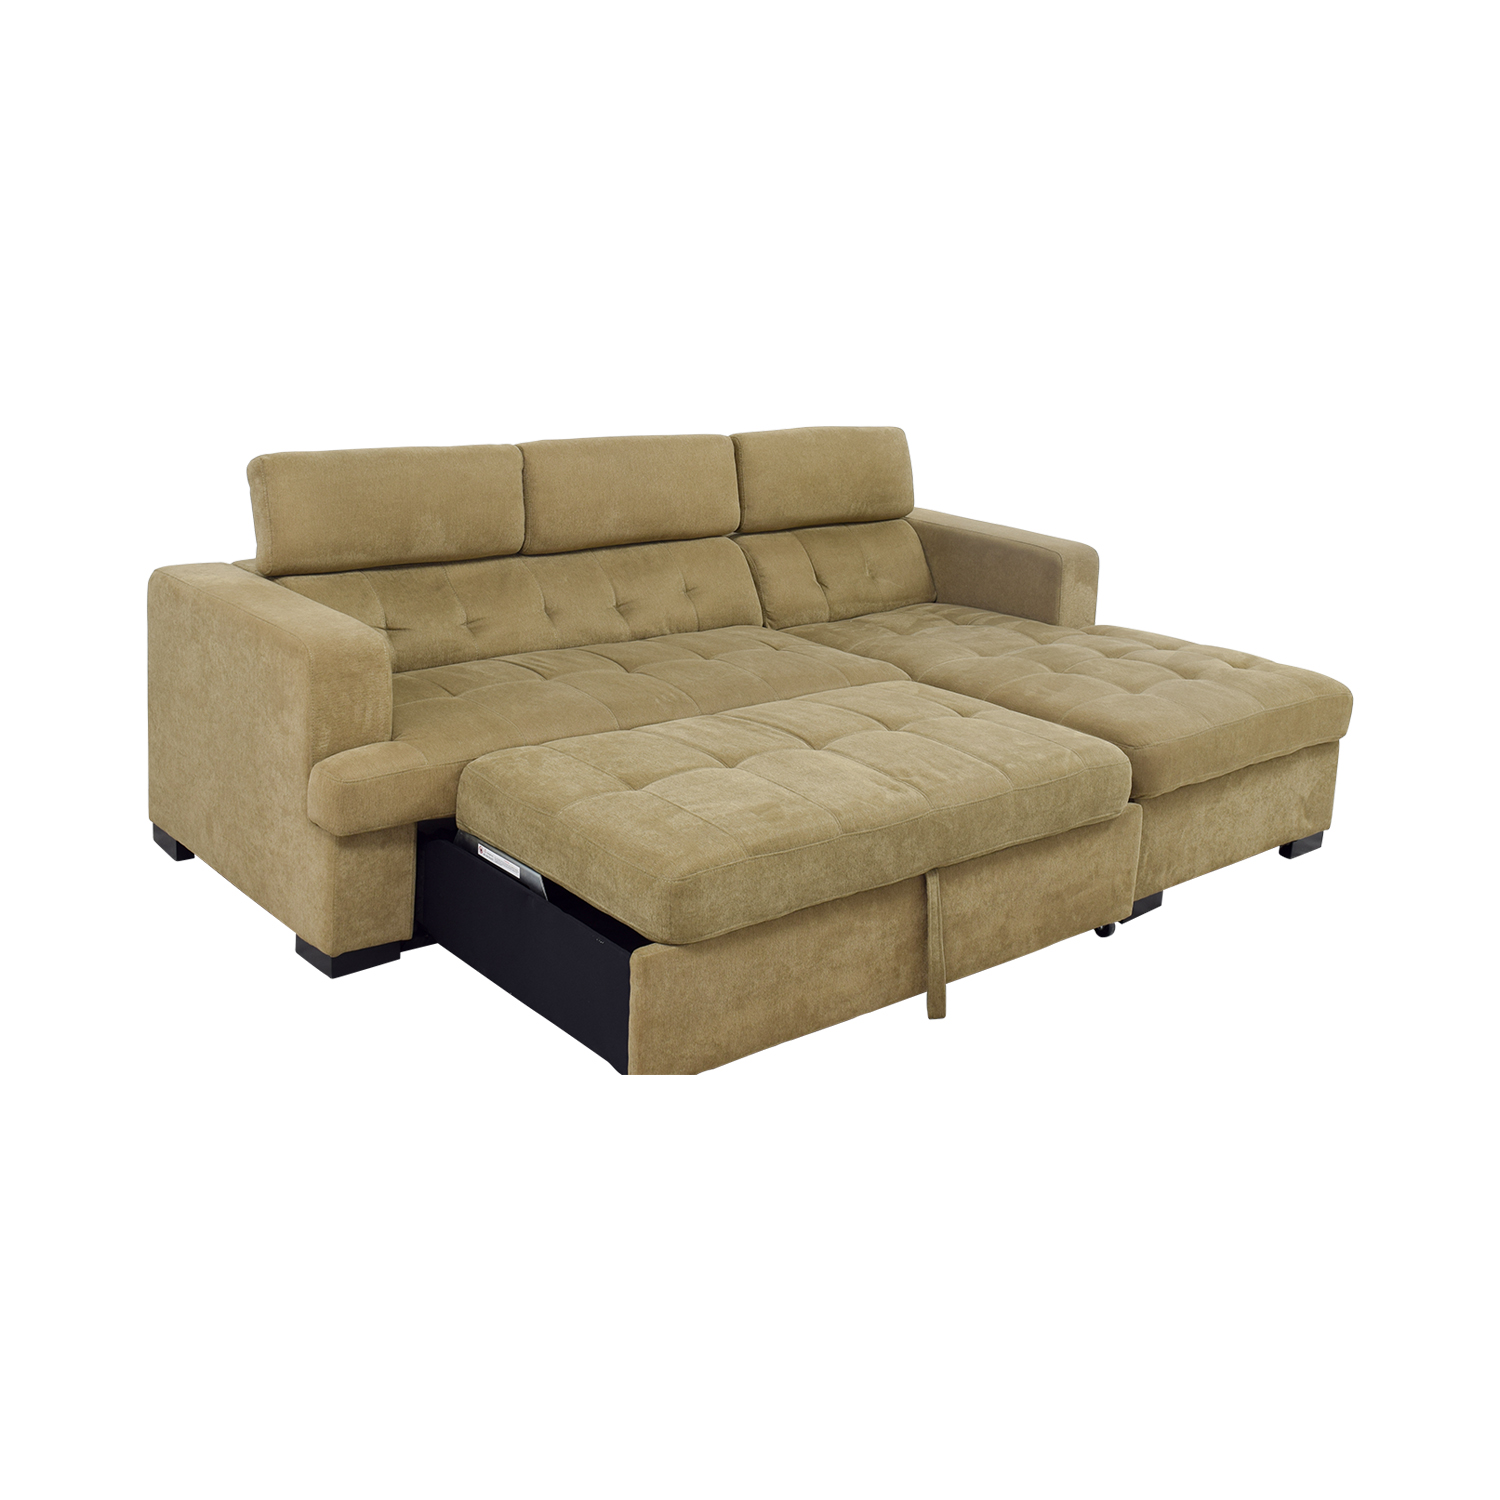 100 Bobs Furniture Sofa Bed Bobs Furniture Sofa Bed Bob Furniture Sofa Bed Bobs Bedroom